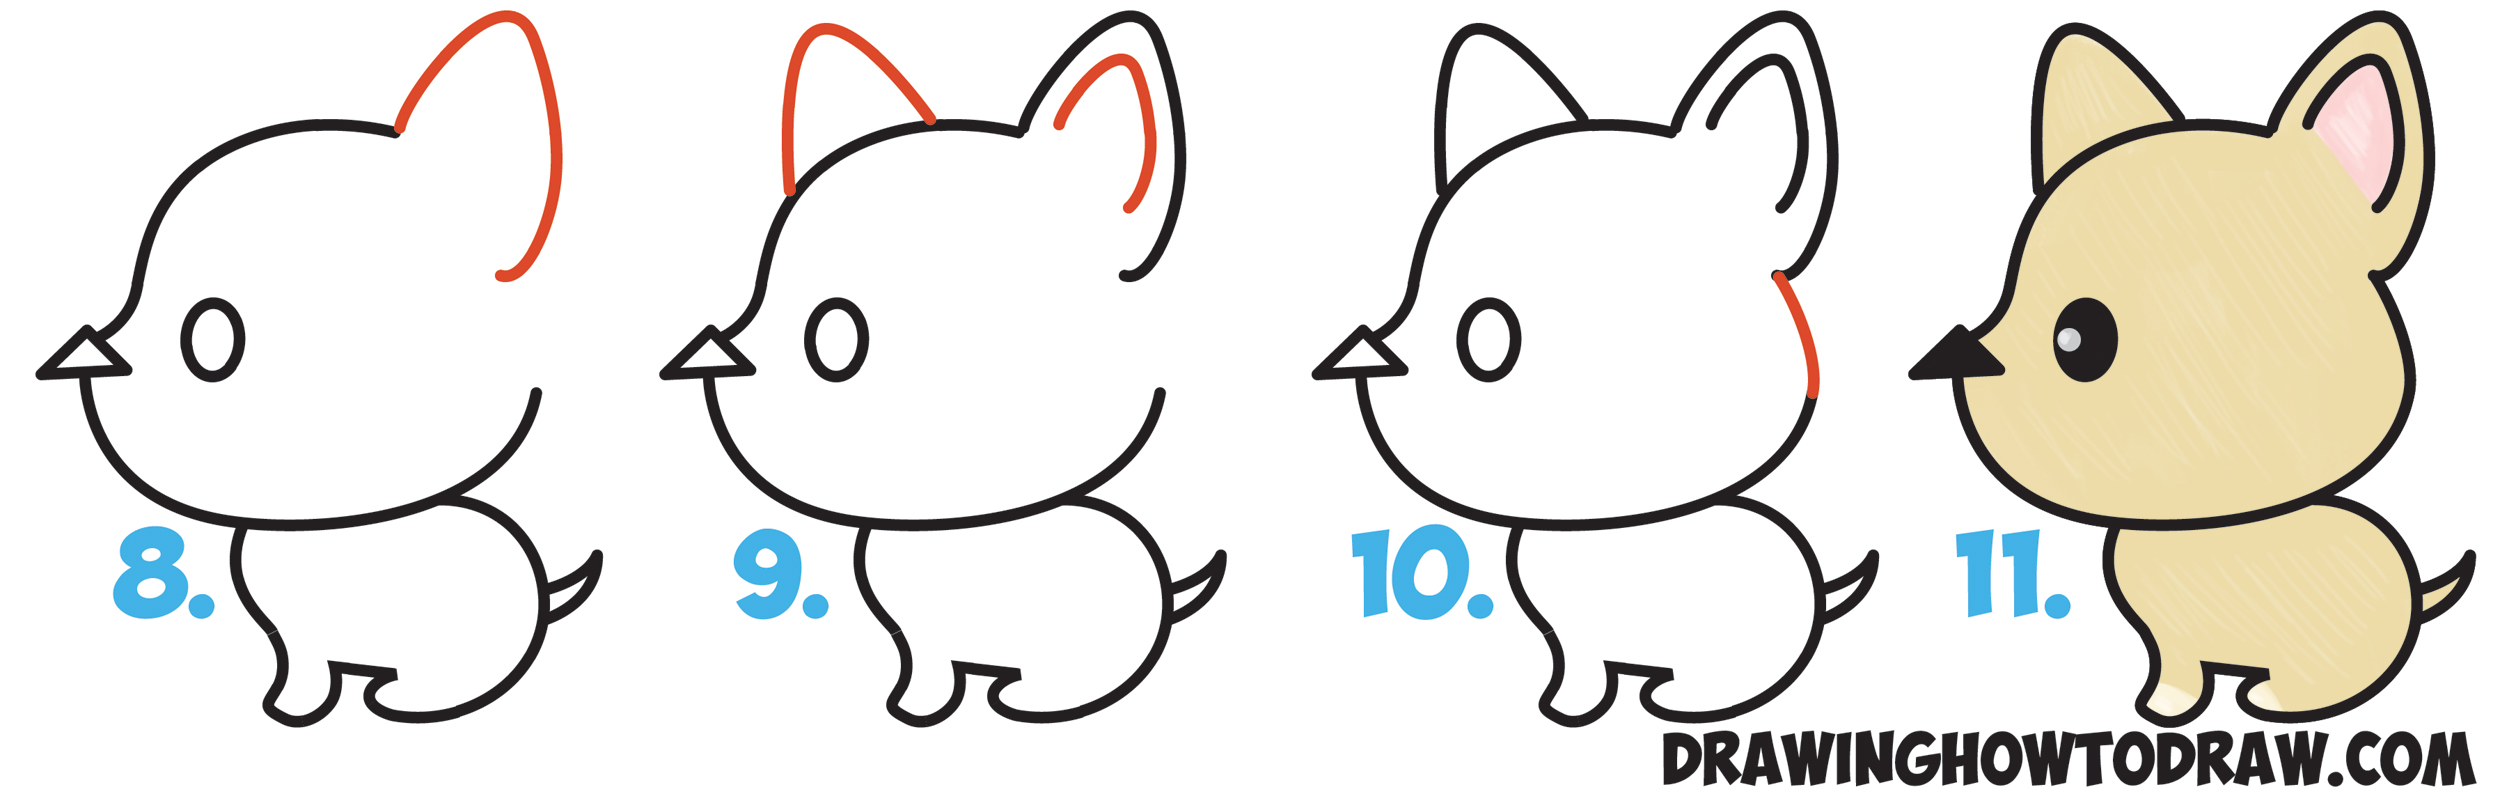 How To Draw A Cute Cartoon Dog Kawaii Style From An Arrow Easy